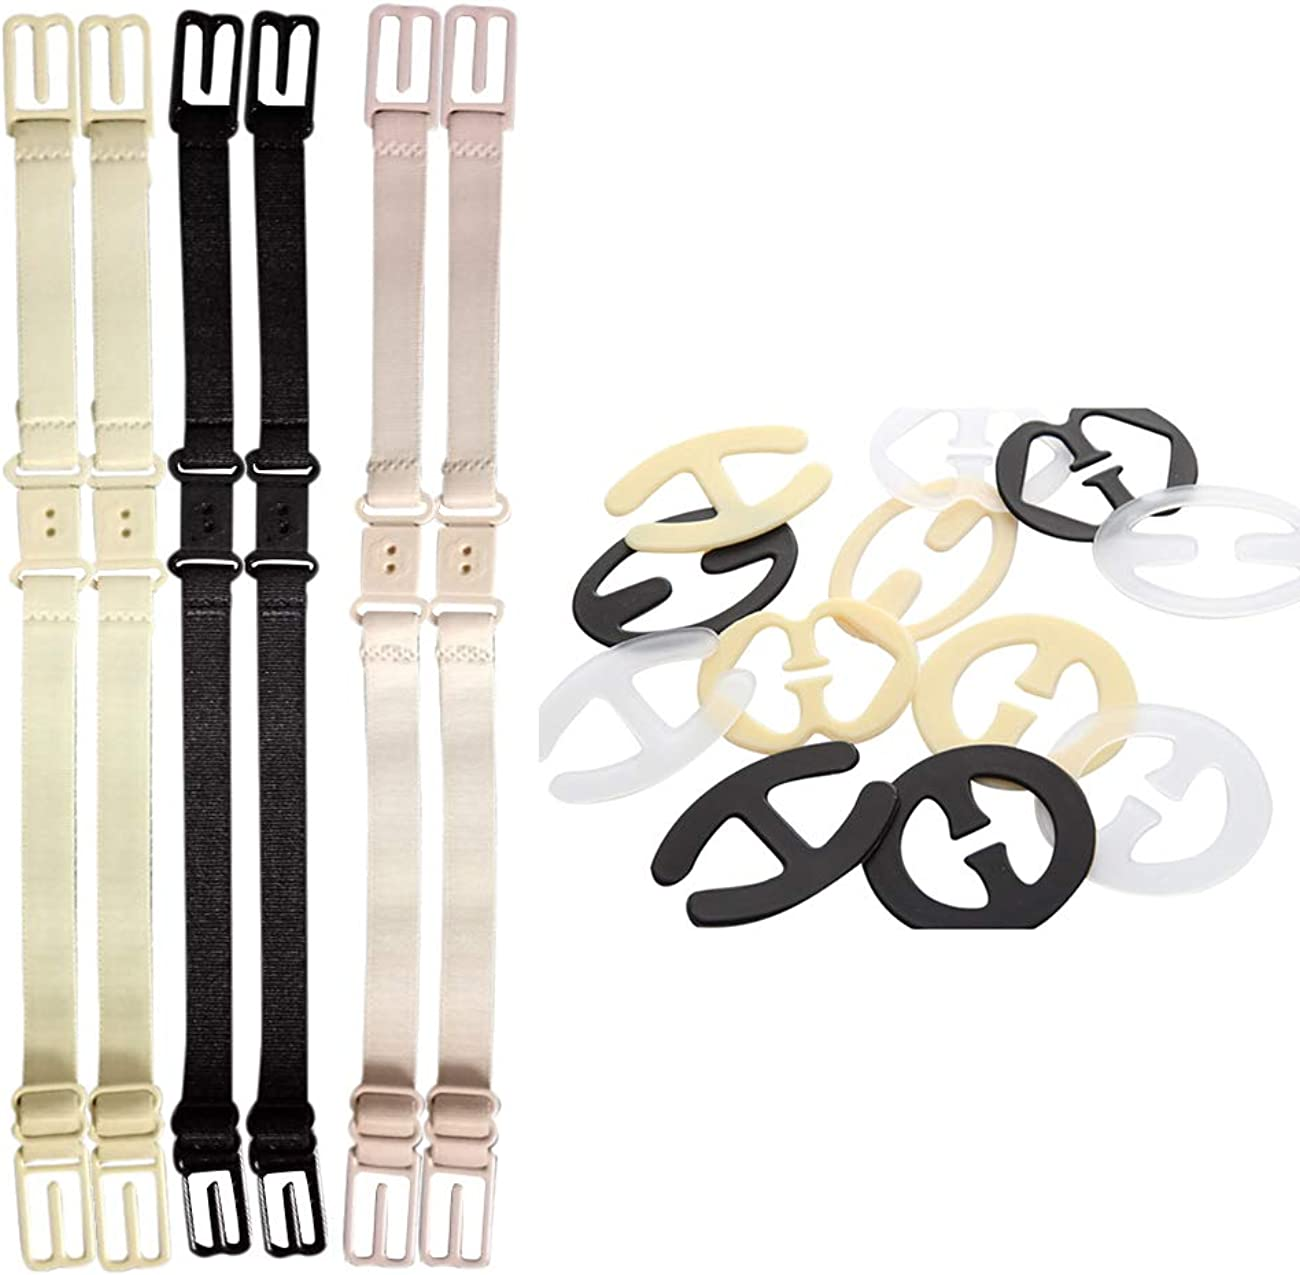 Ladies 18 PCS Conceal Non-Slip Straps Converter Adjustable Elastic Band for T Back Tank Top Zhhlaixing Bra Strap Clips /& Holders Set